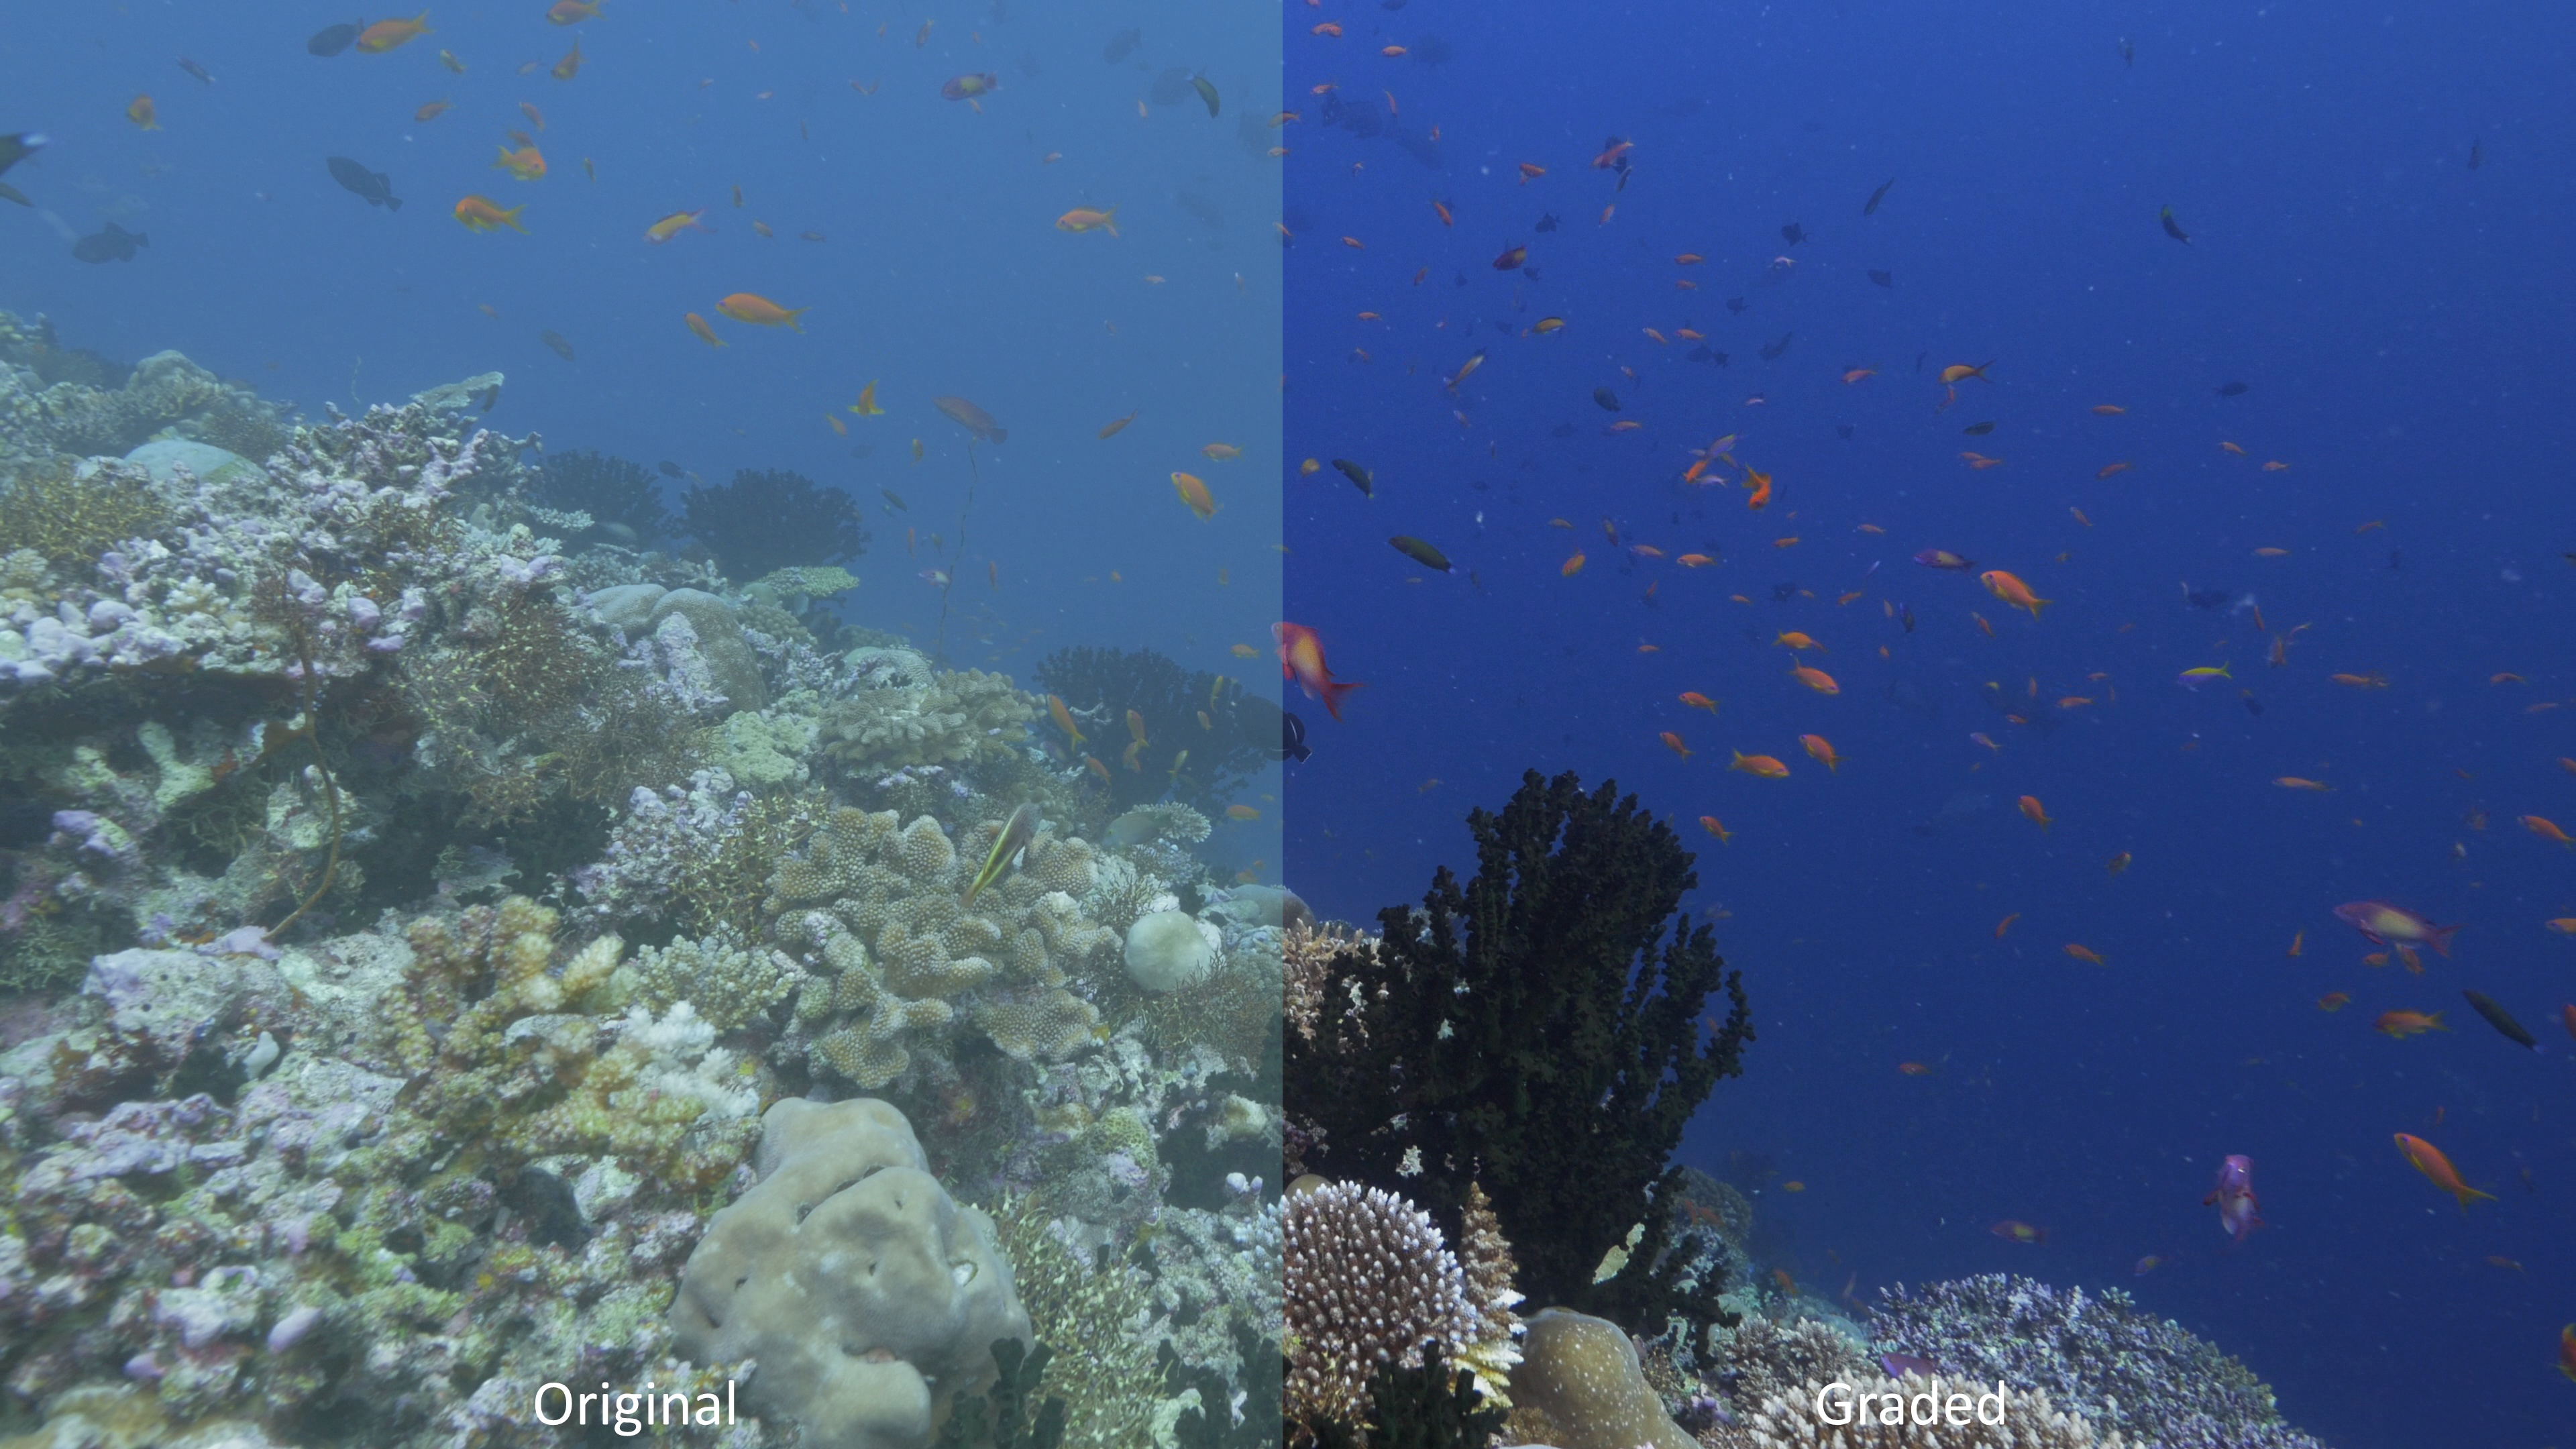 Panasonic GH4 Underwater Test Footage – Graded & Ungraded